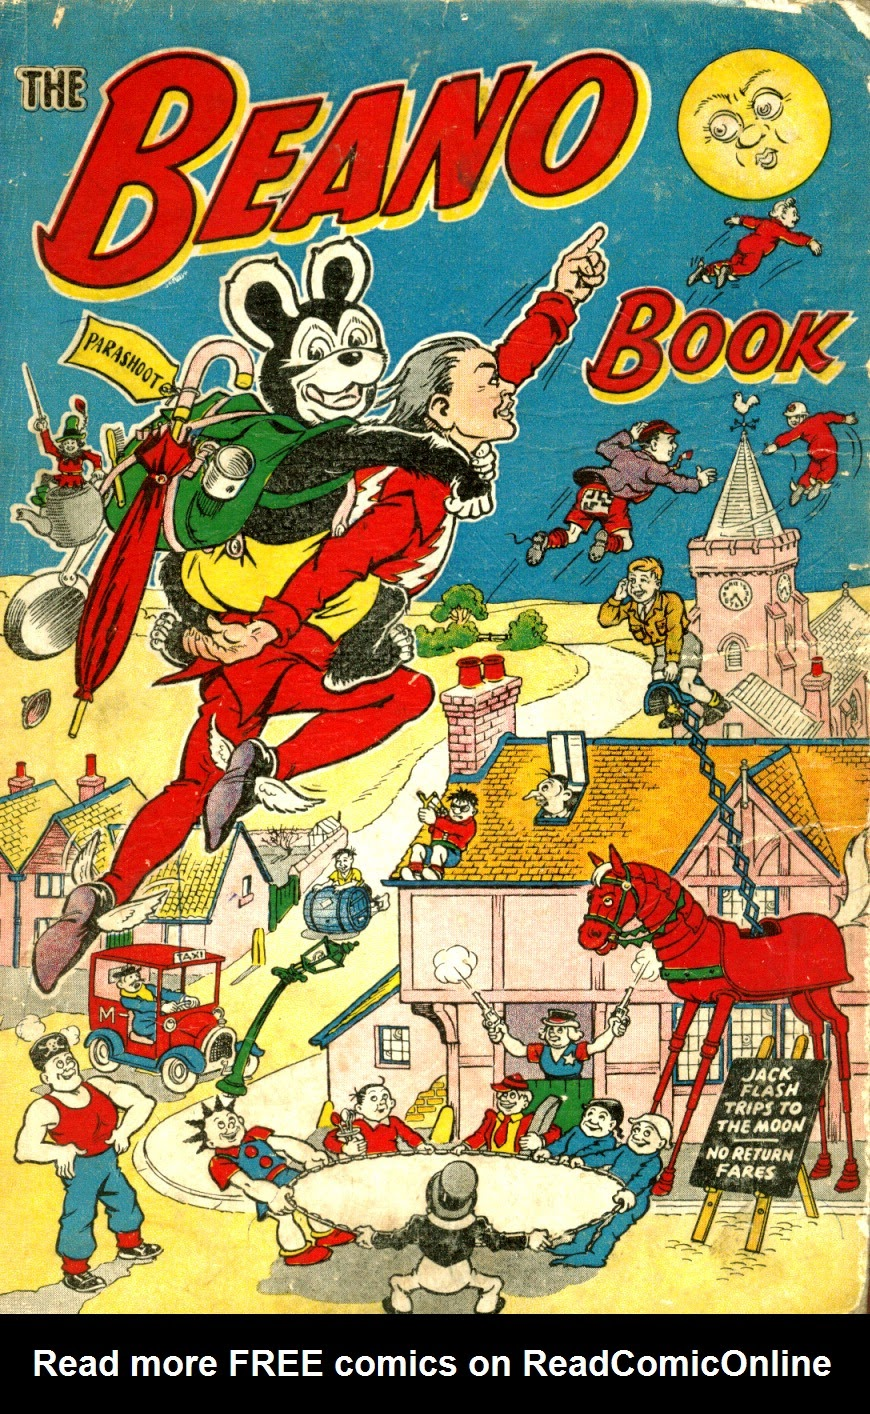 The Beano Book (Annual) 1953 Page 1